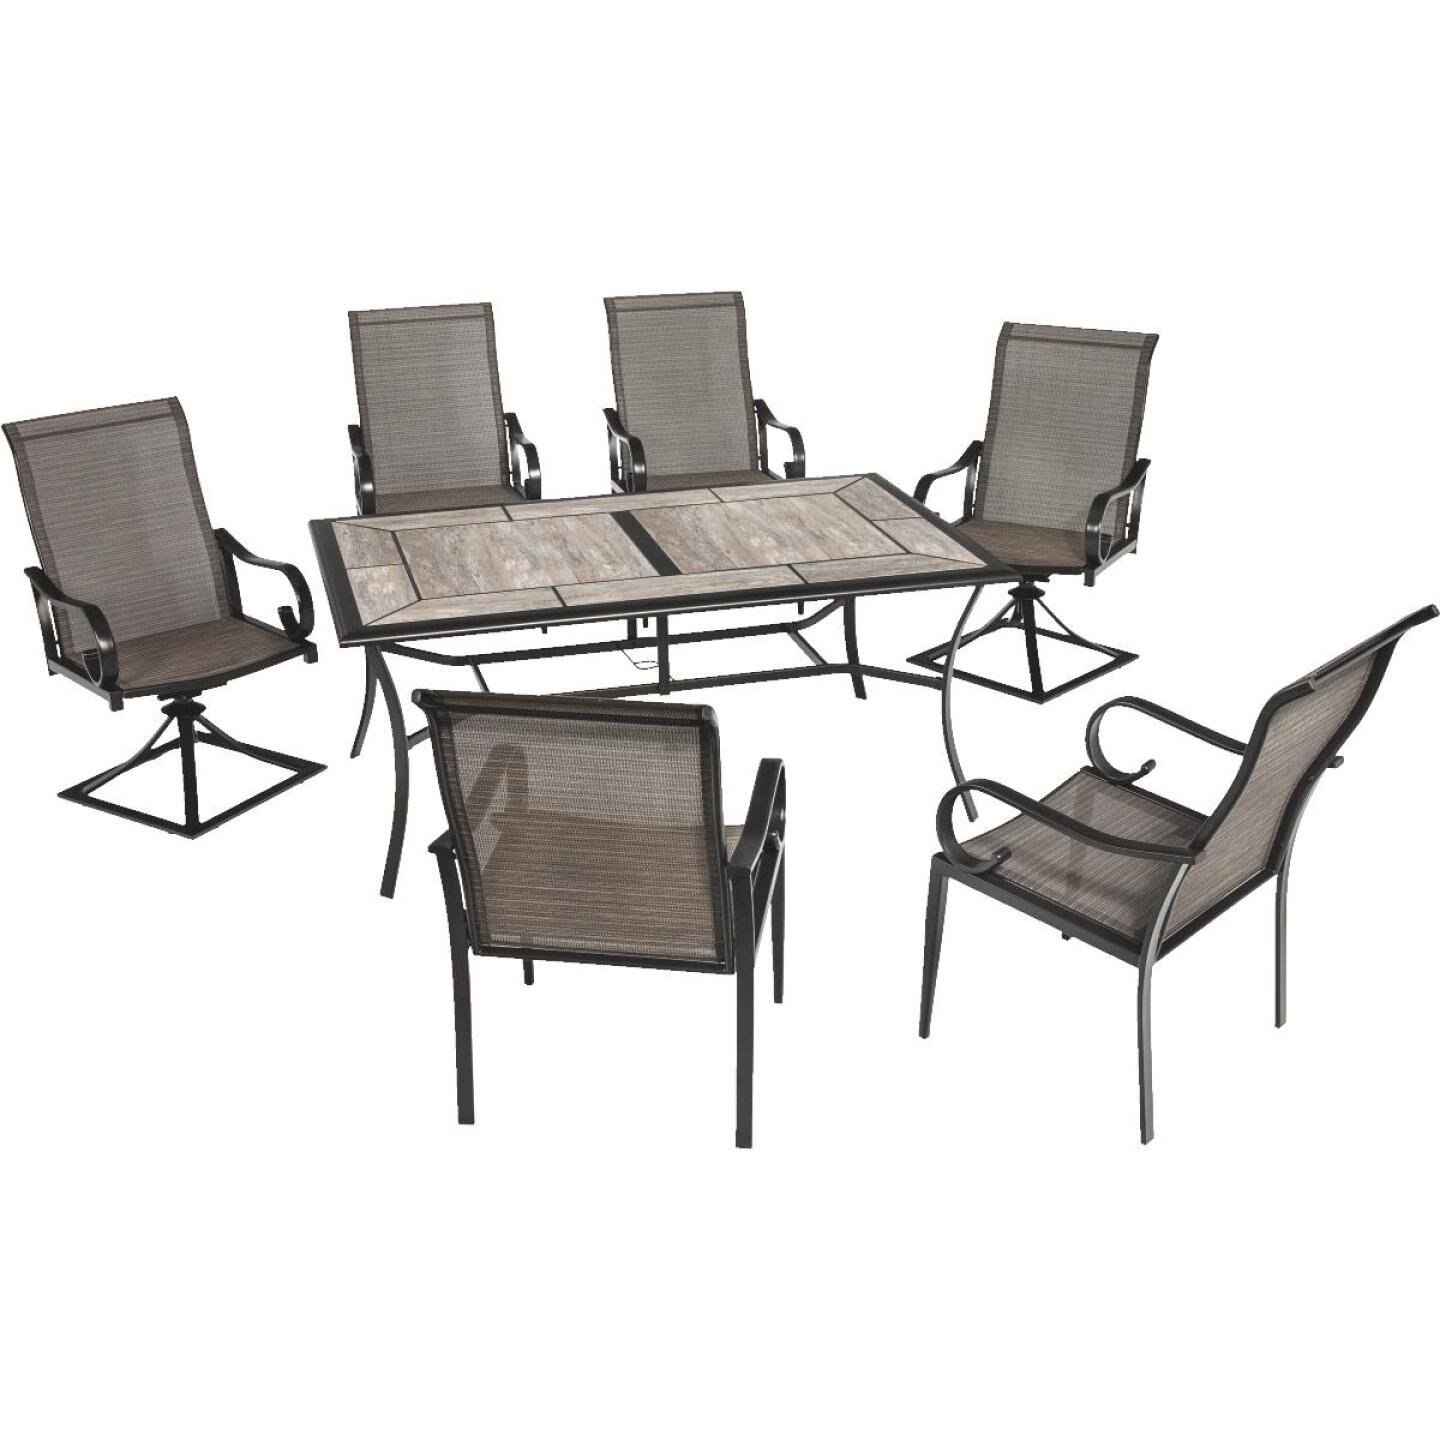 Outdoor Expressions Berkshire 7-Piece Dining Set Image 164